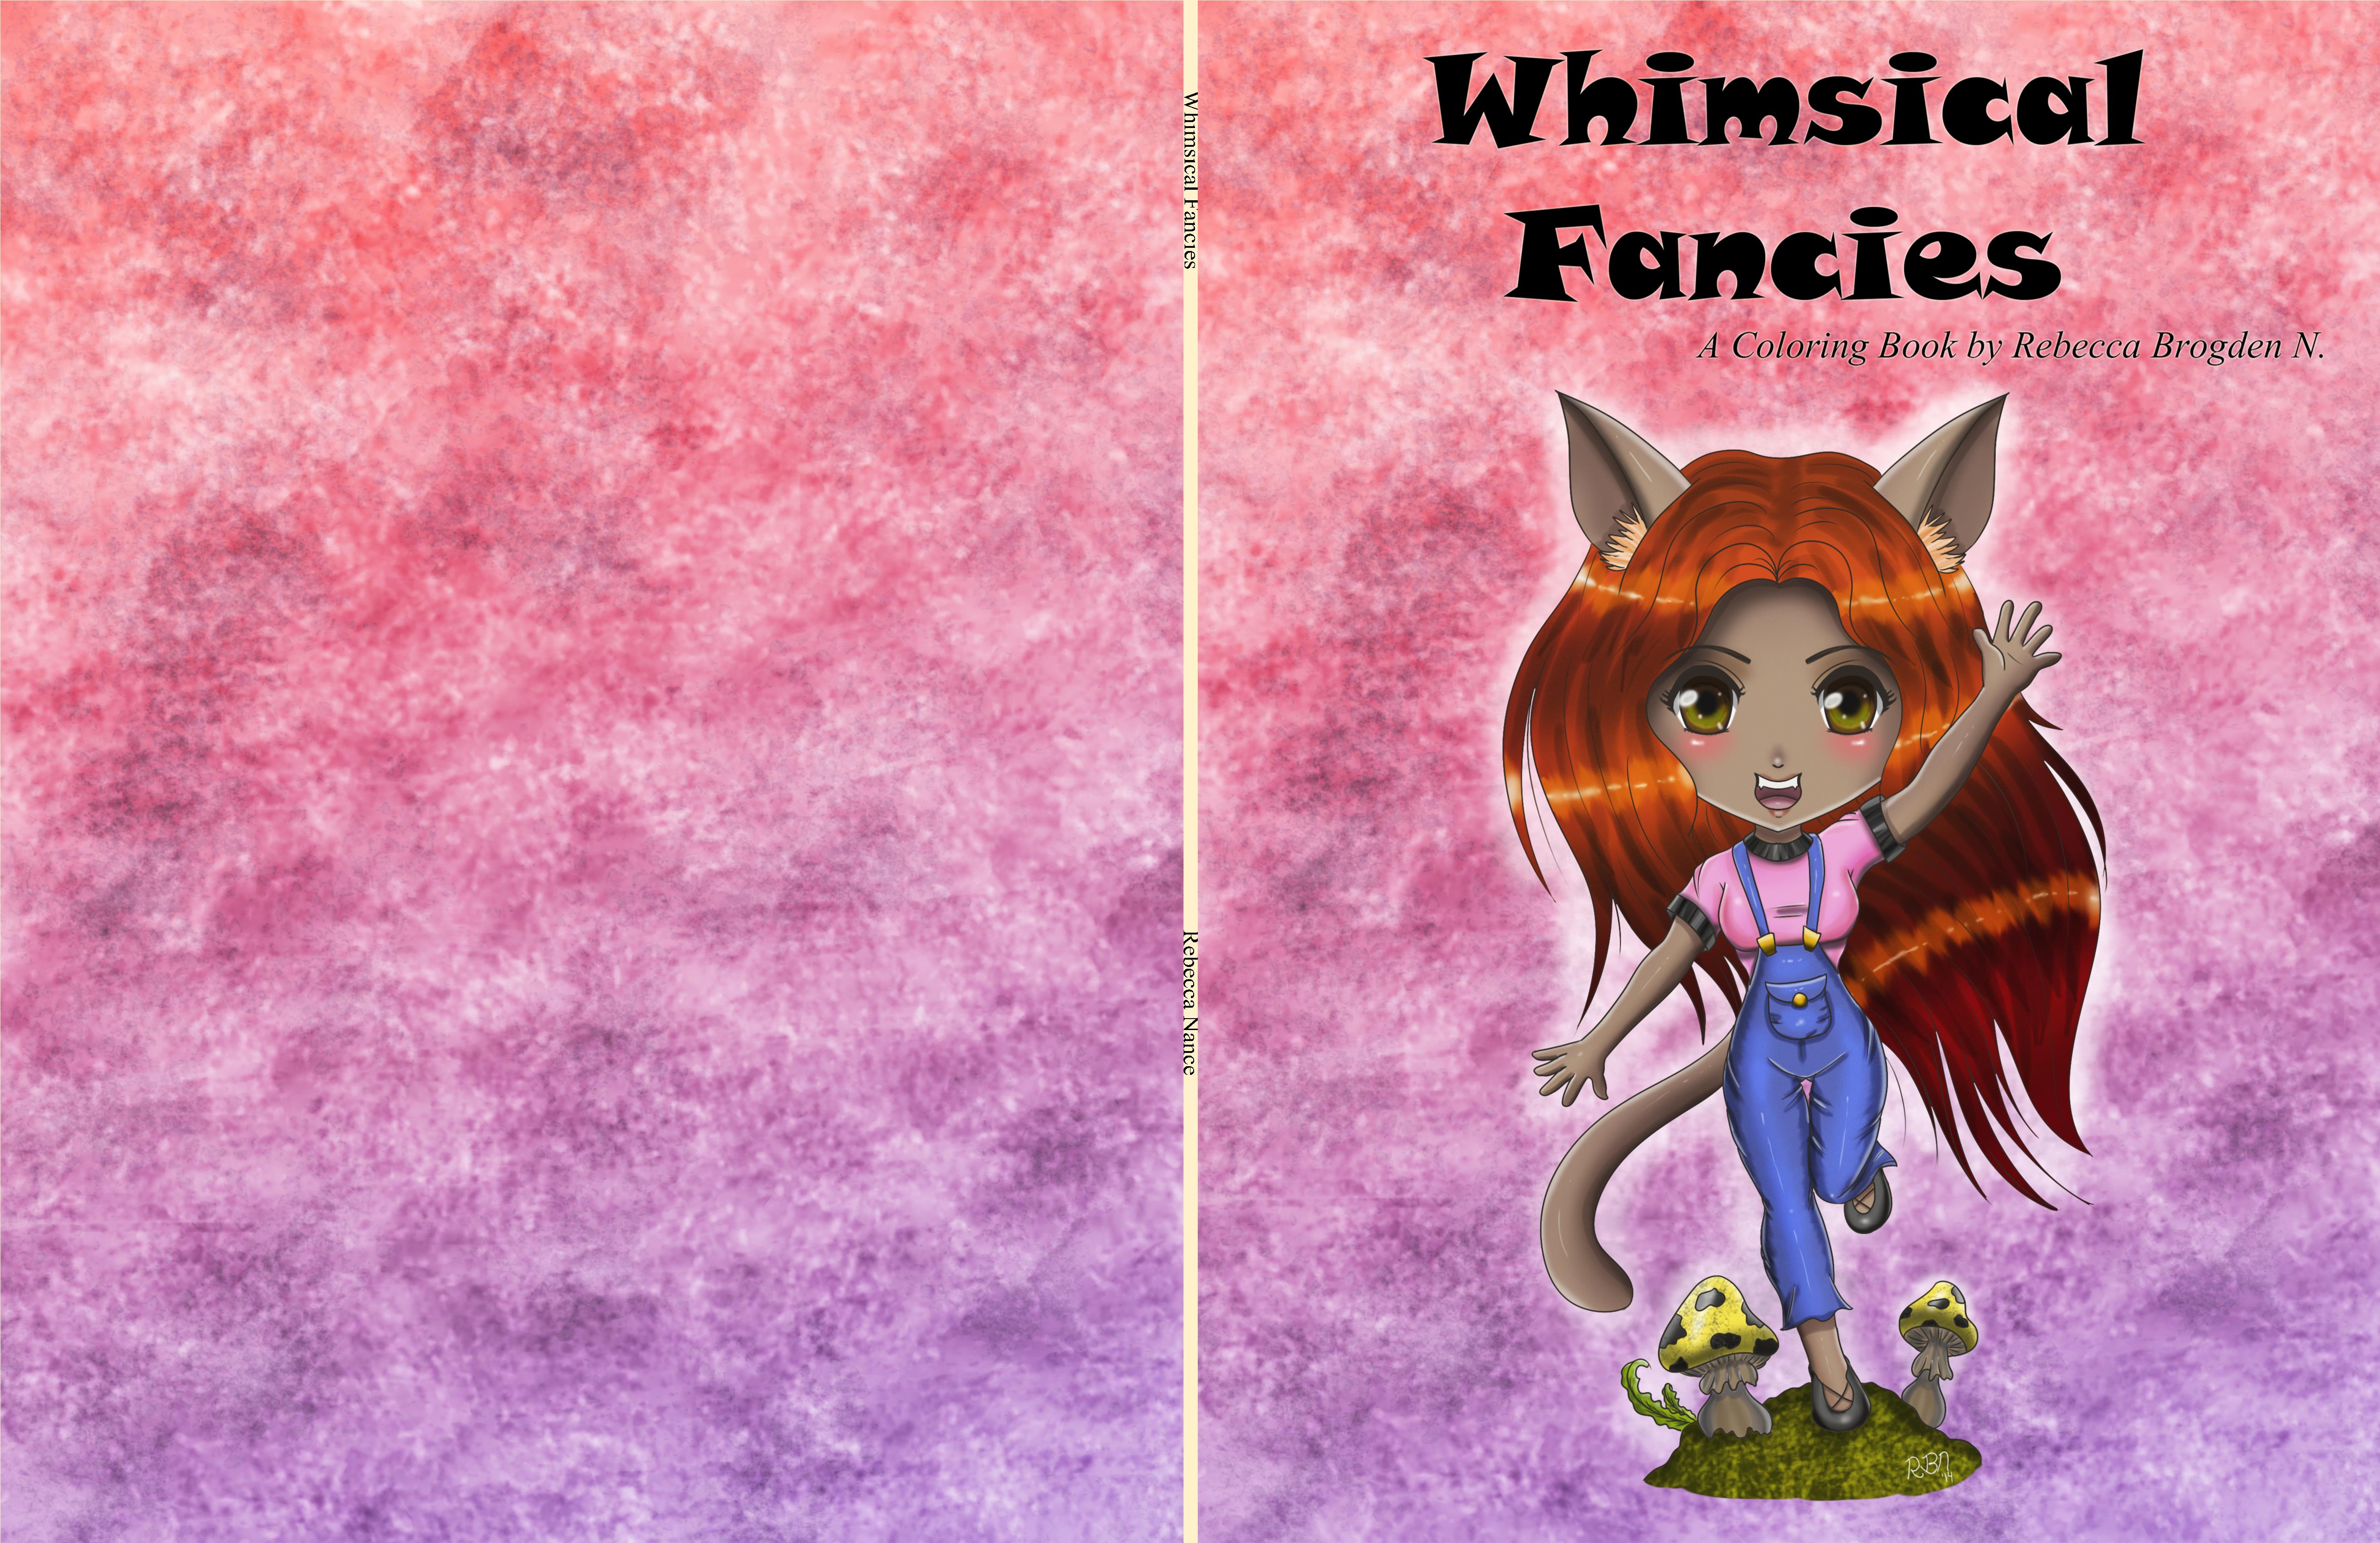 Whimsical Fancies cover image